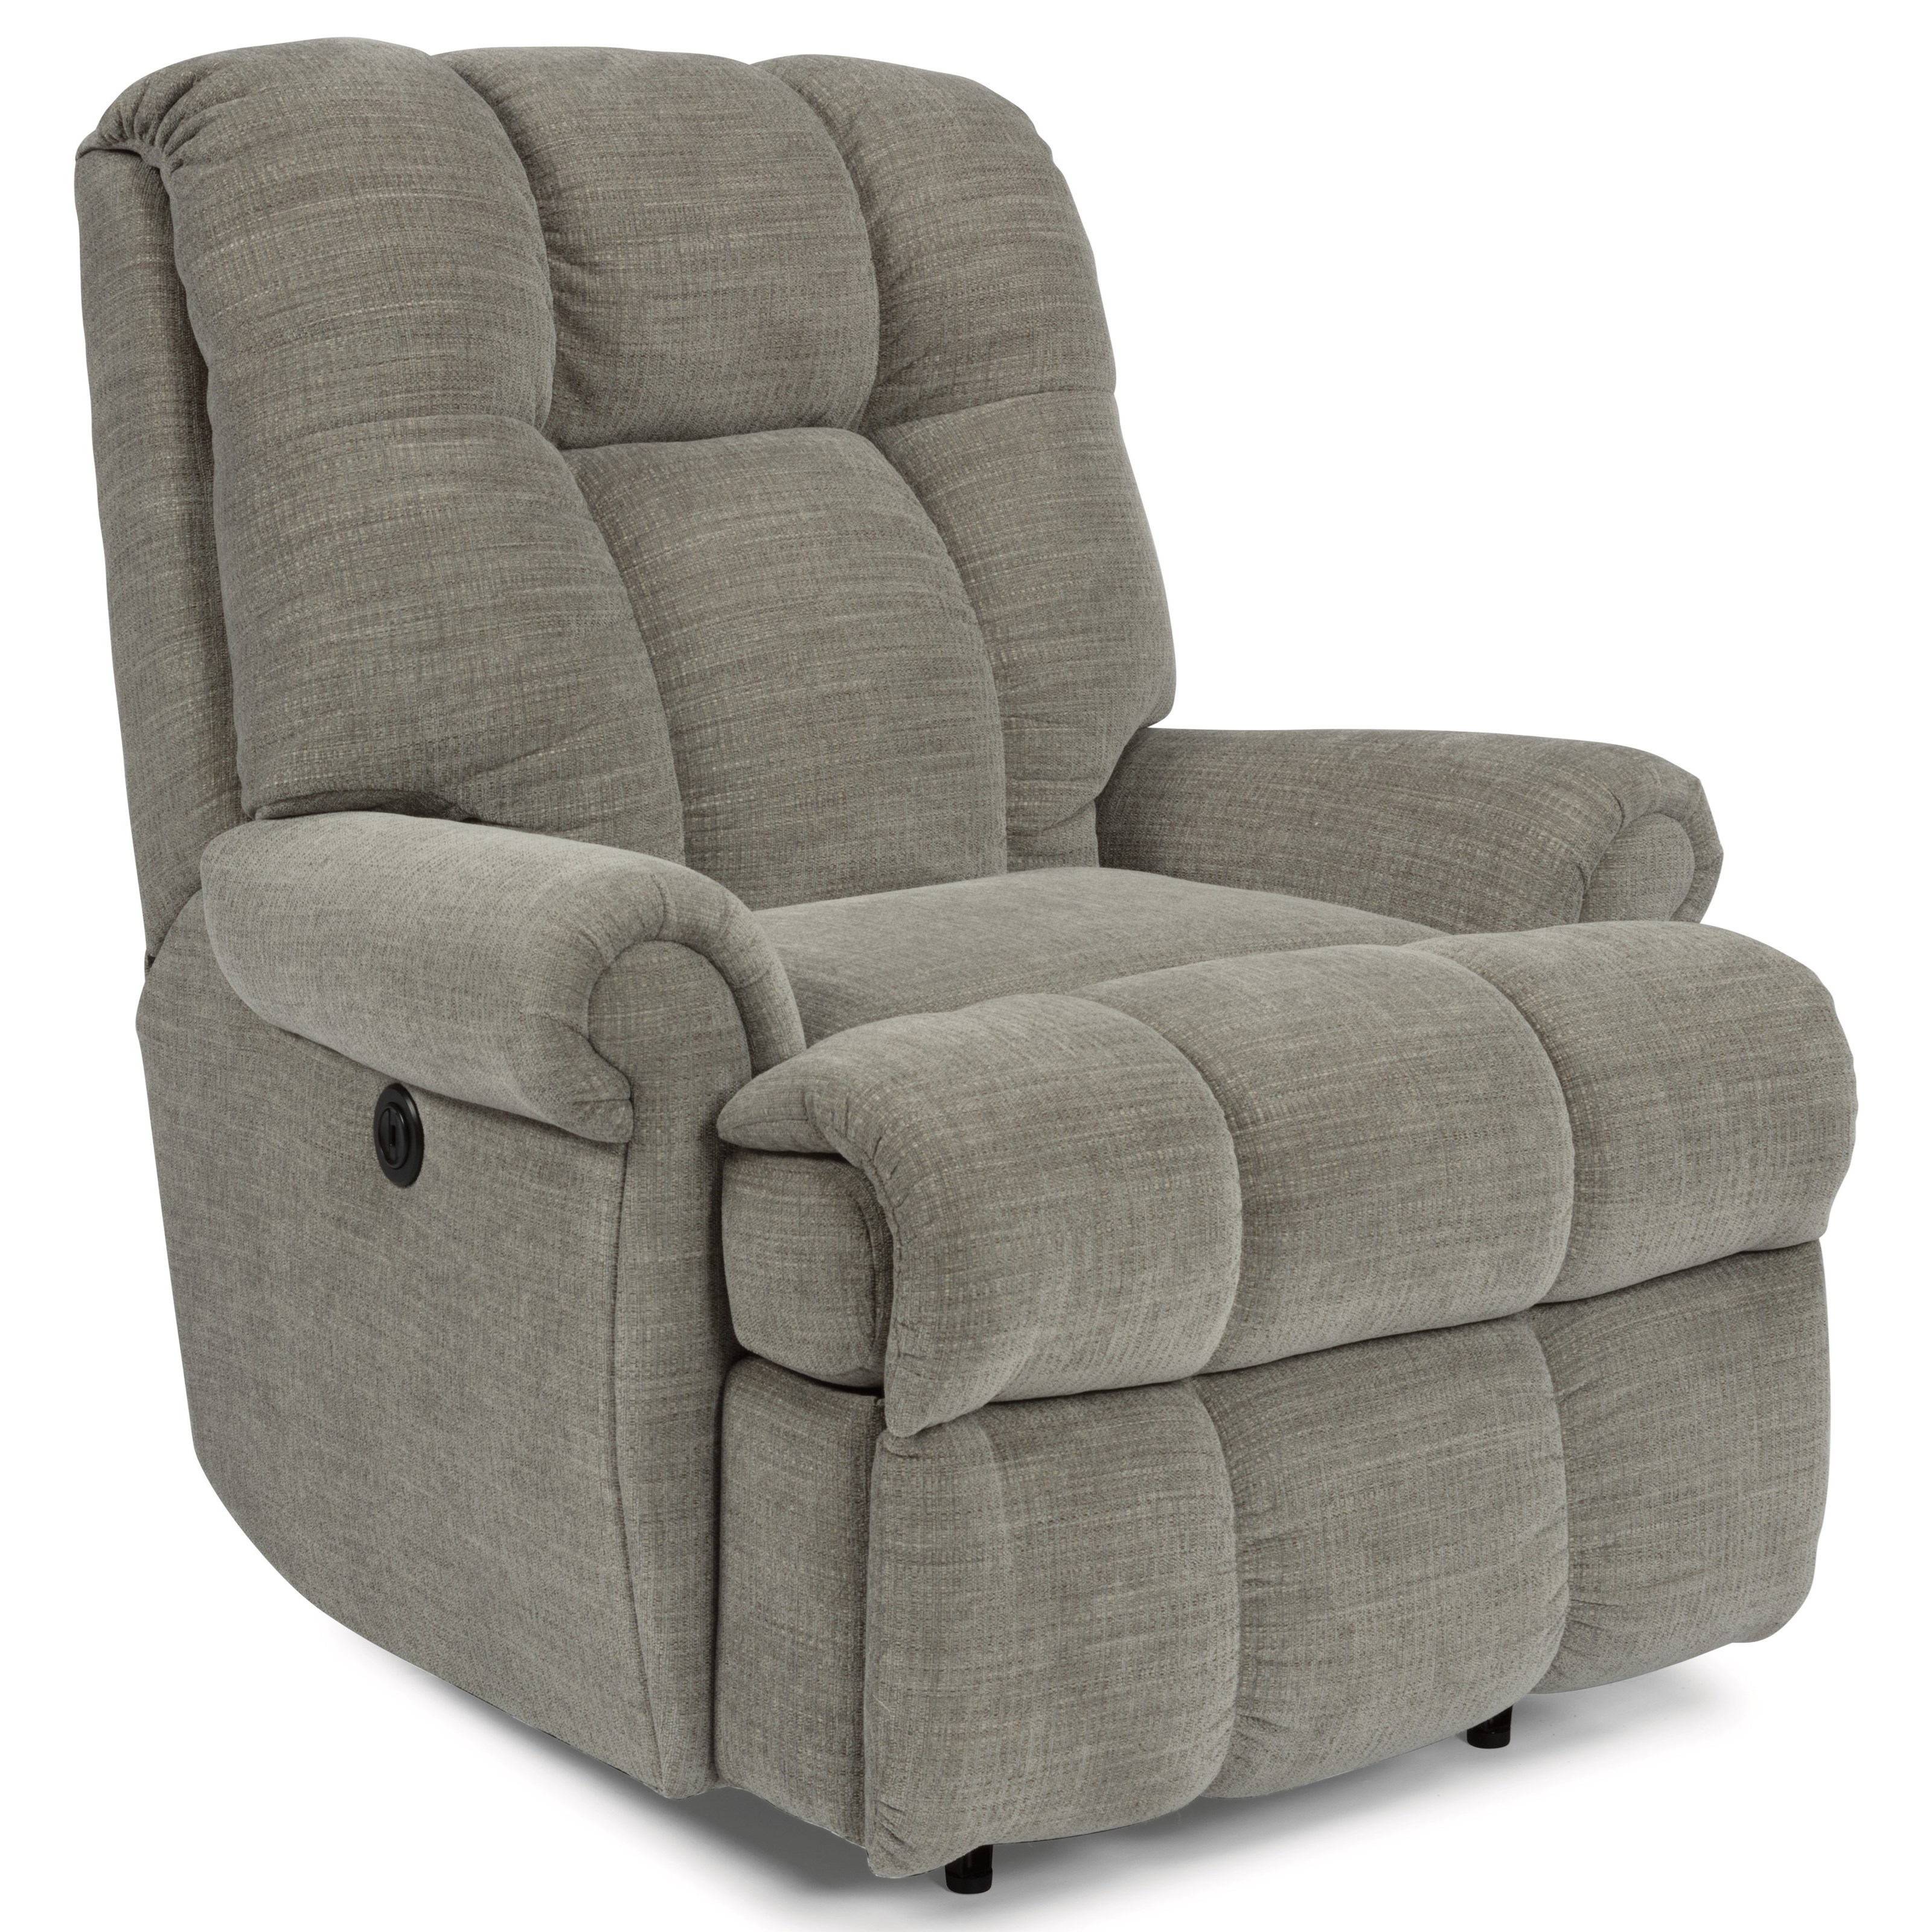 Accents Large Recliner with Power by Flexsteel at Goffena Furniture & Mattress Center